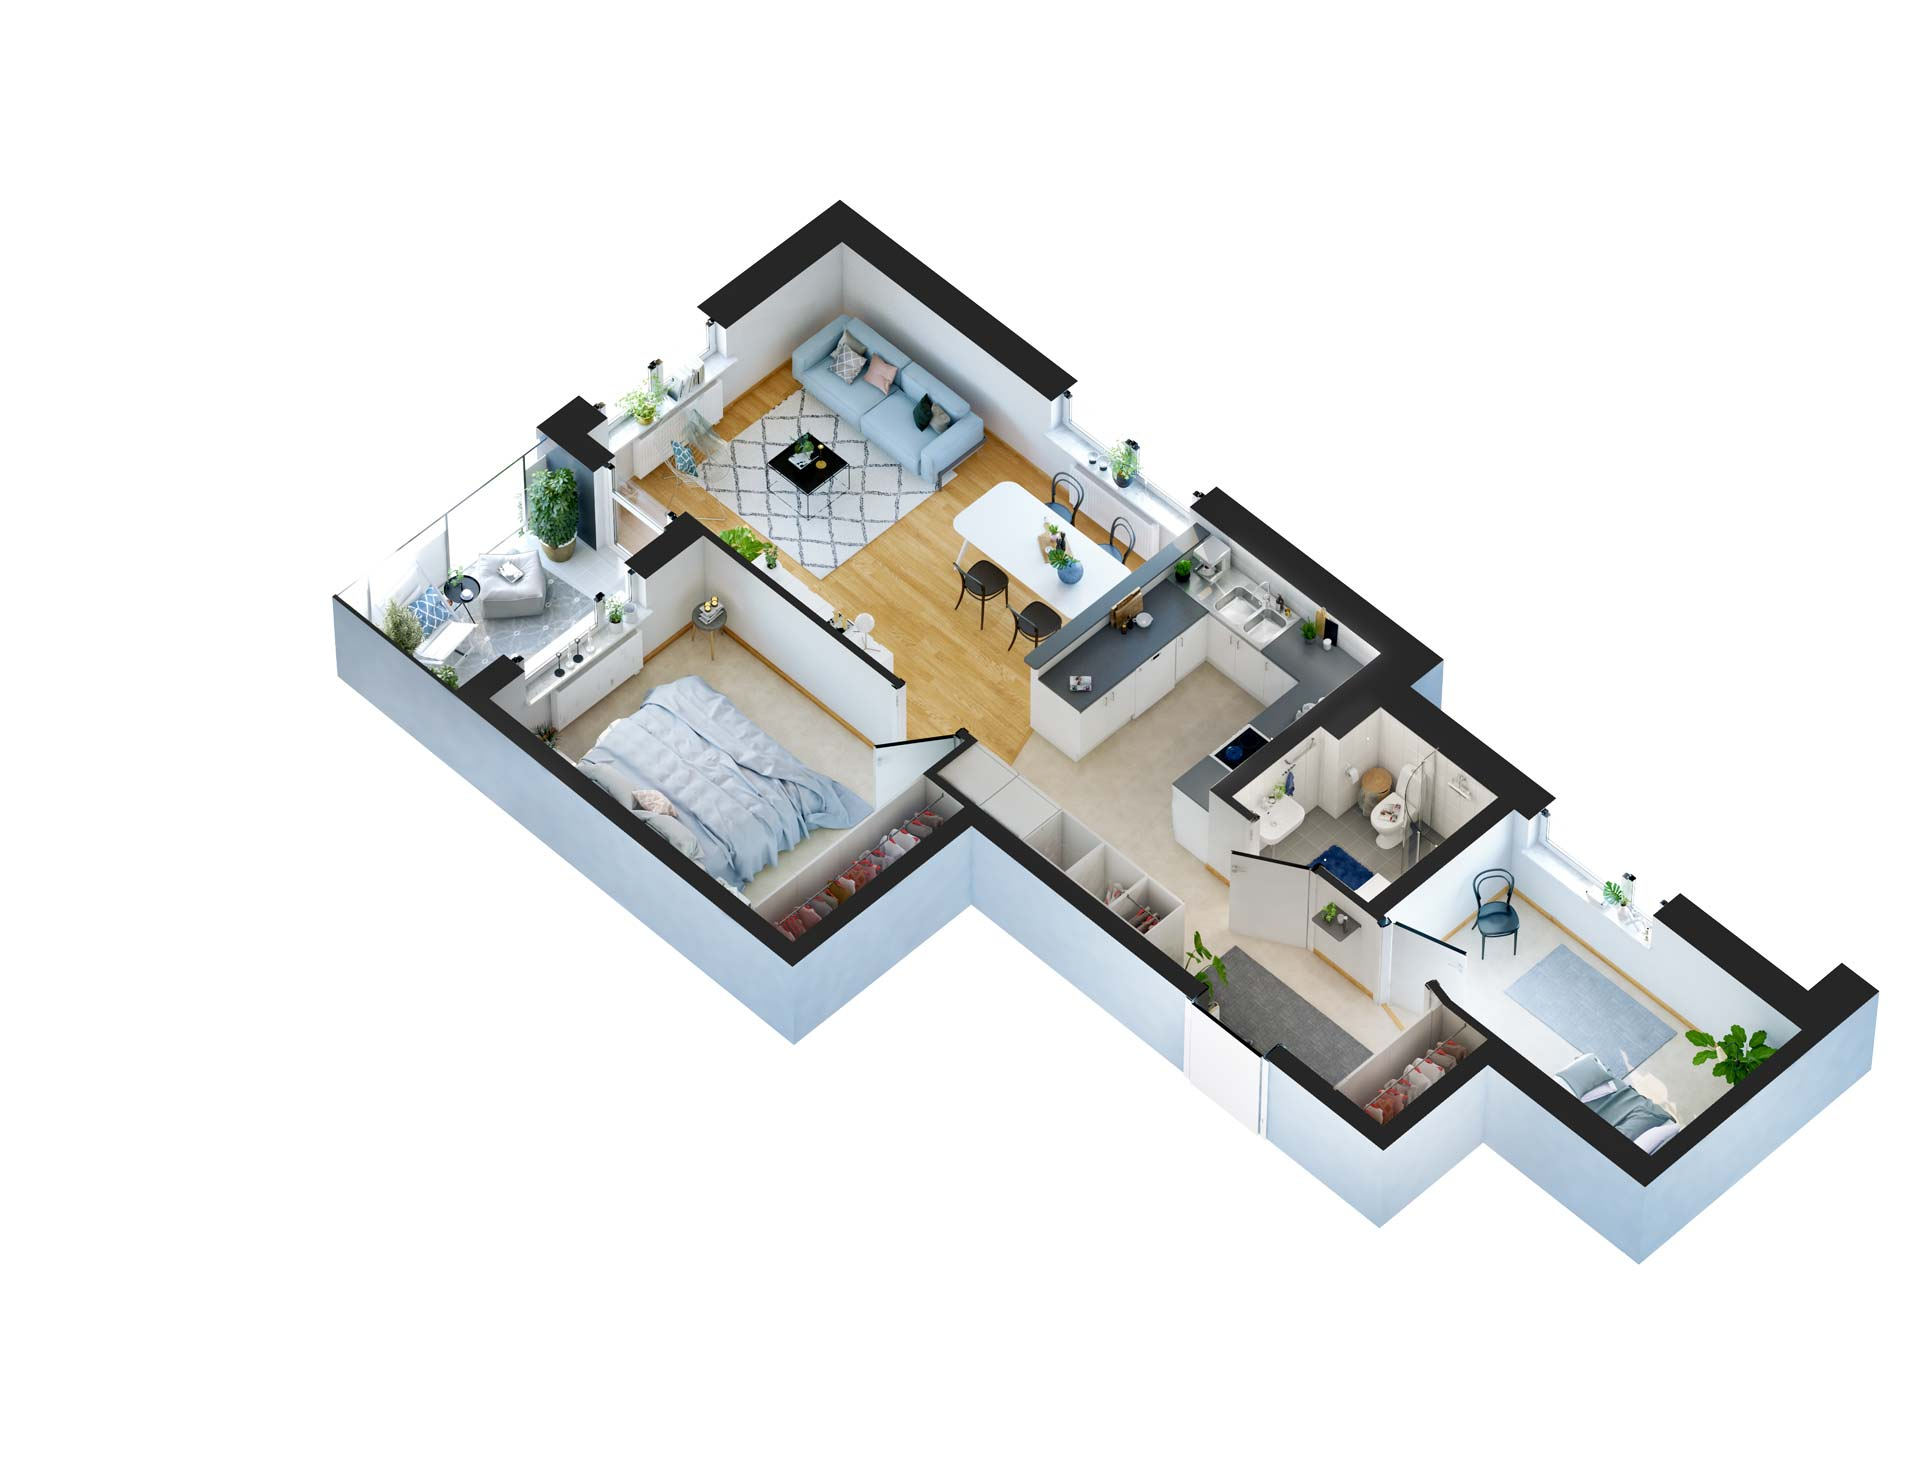 MODERN APARTMENT 3D FLOOR PLAN